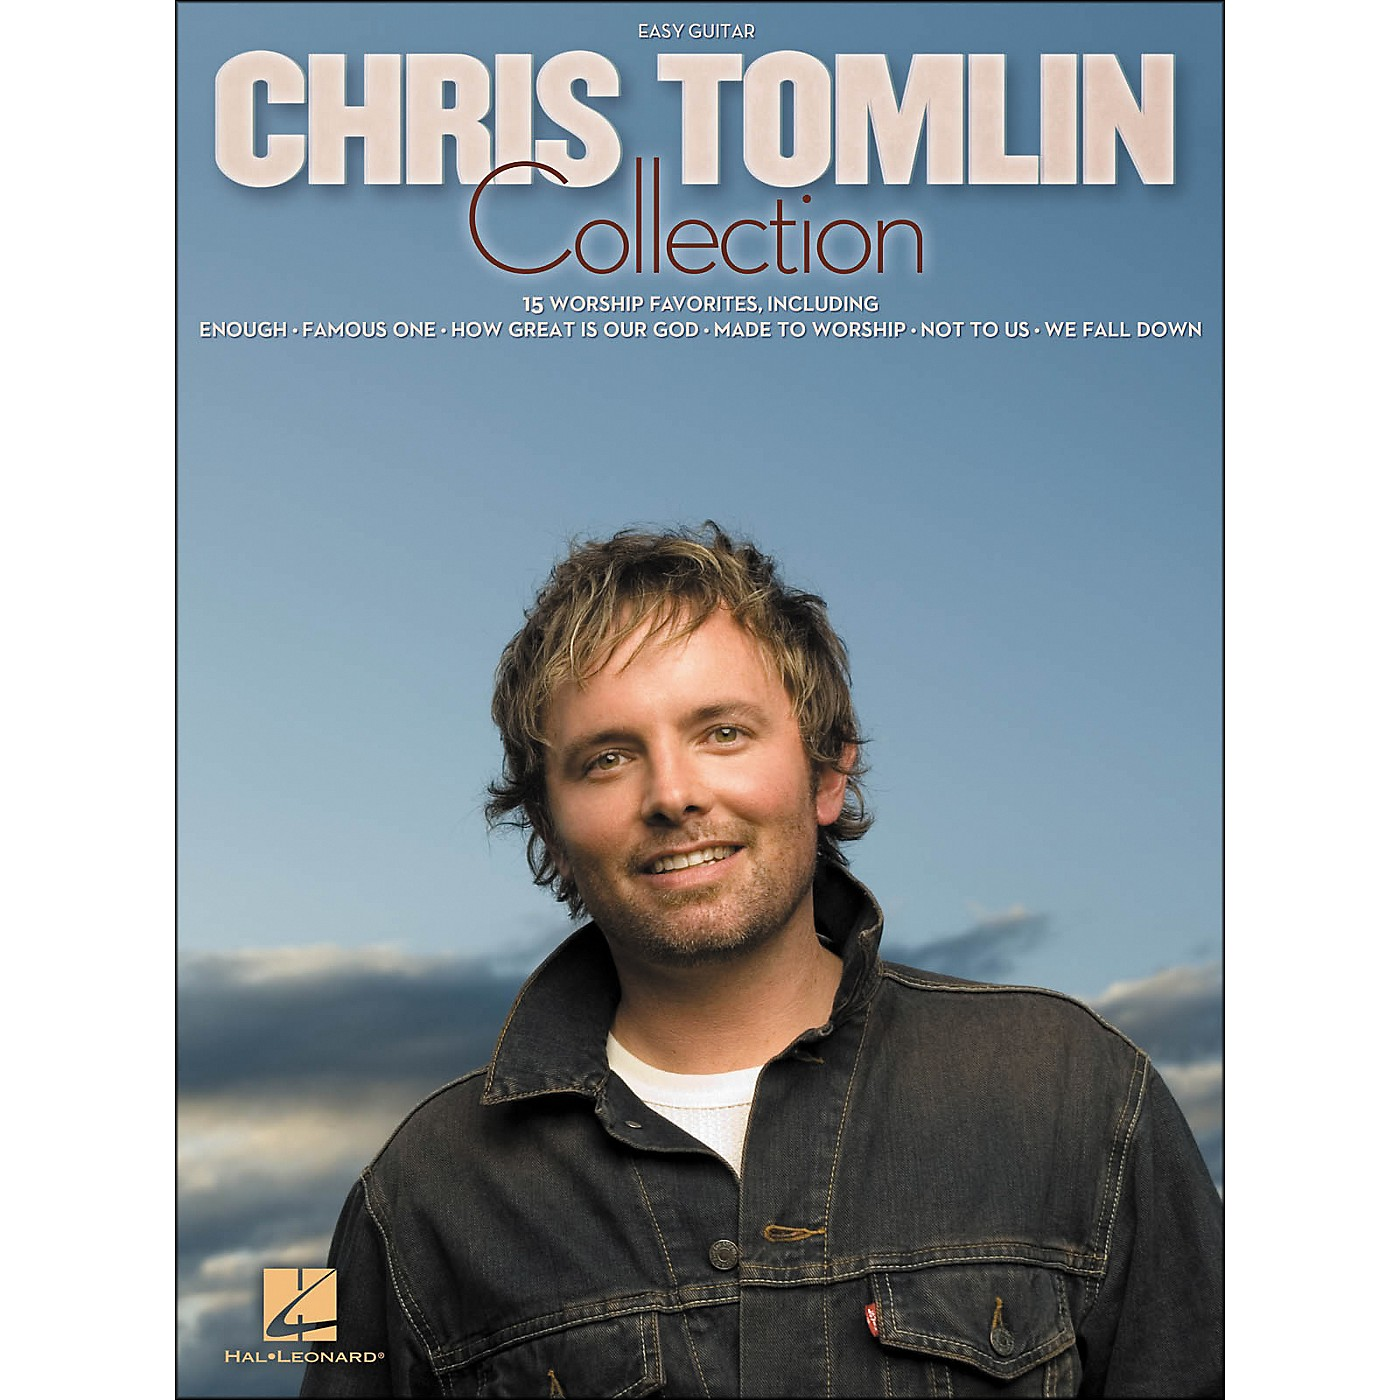 Hal Leonard Chris Tomlin Collection - Easy Guitar with Notes & Tab thumbnail